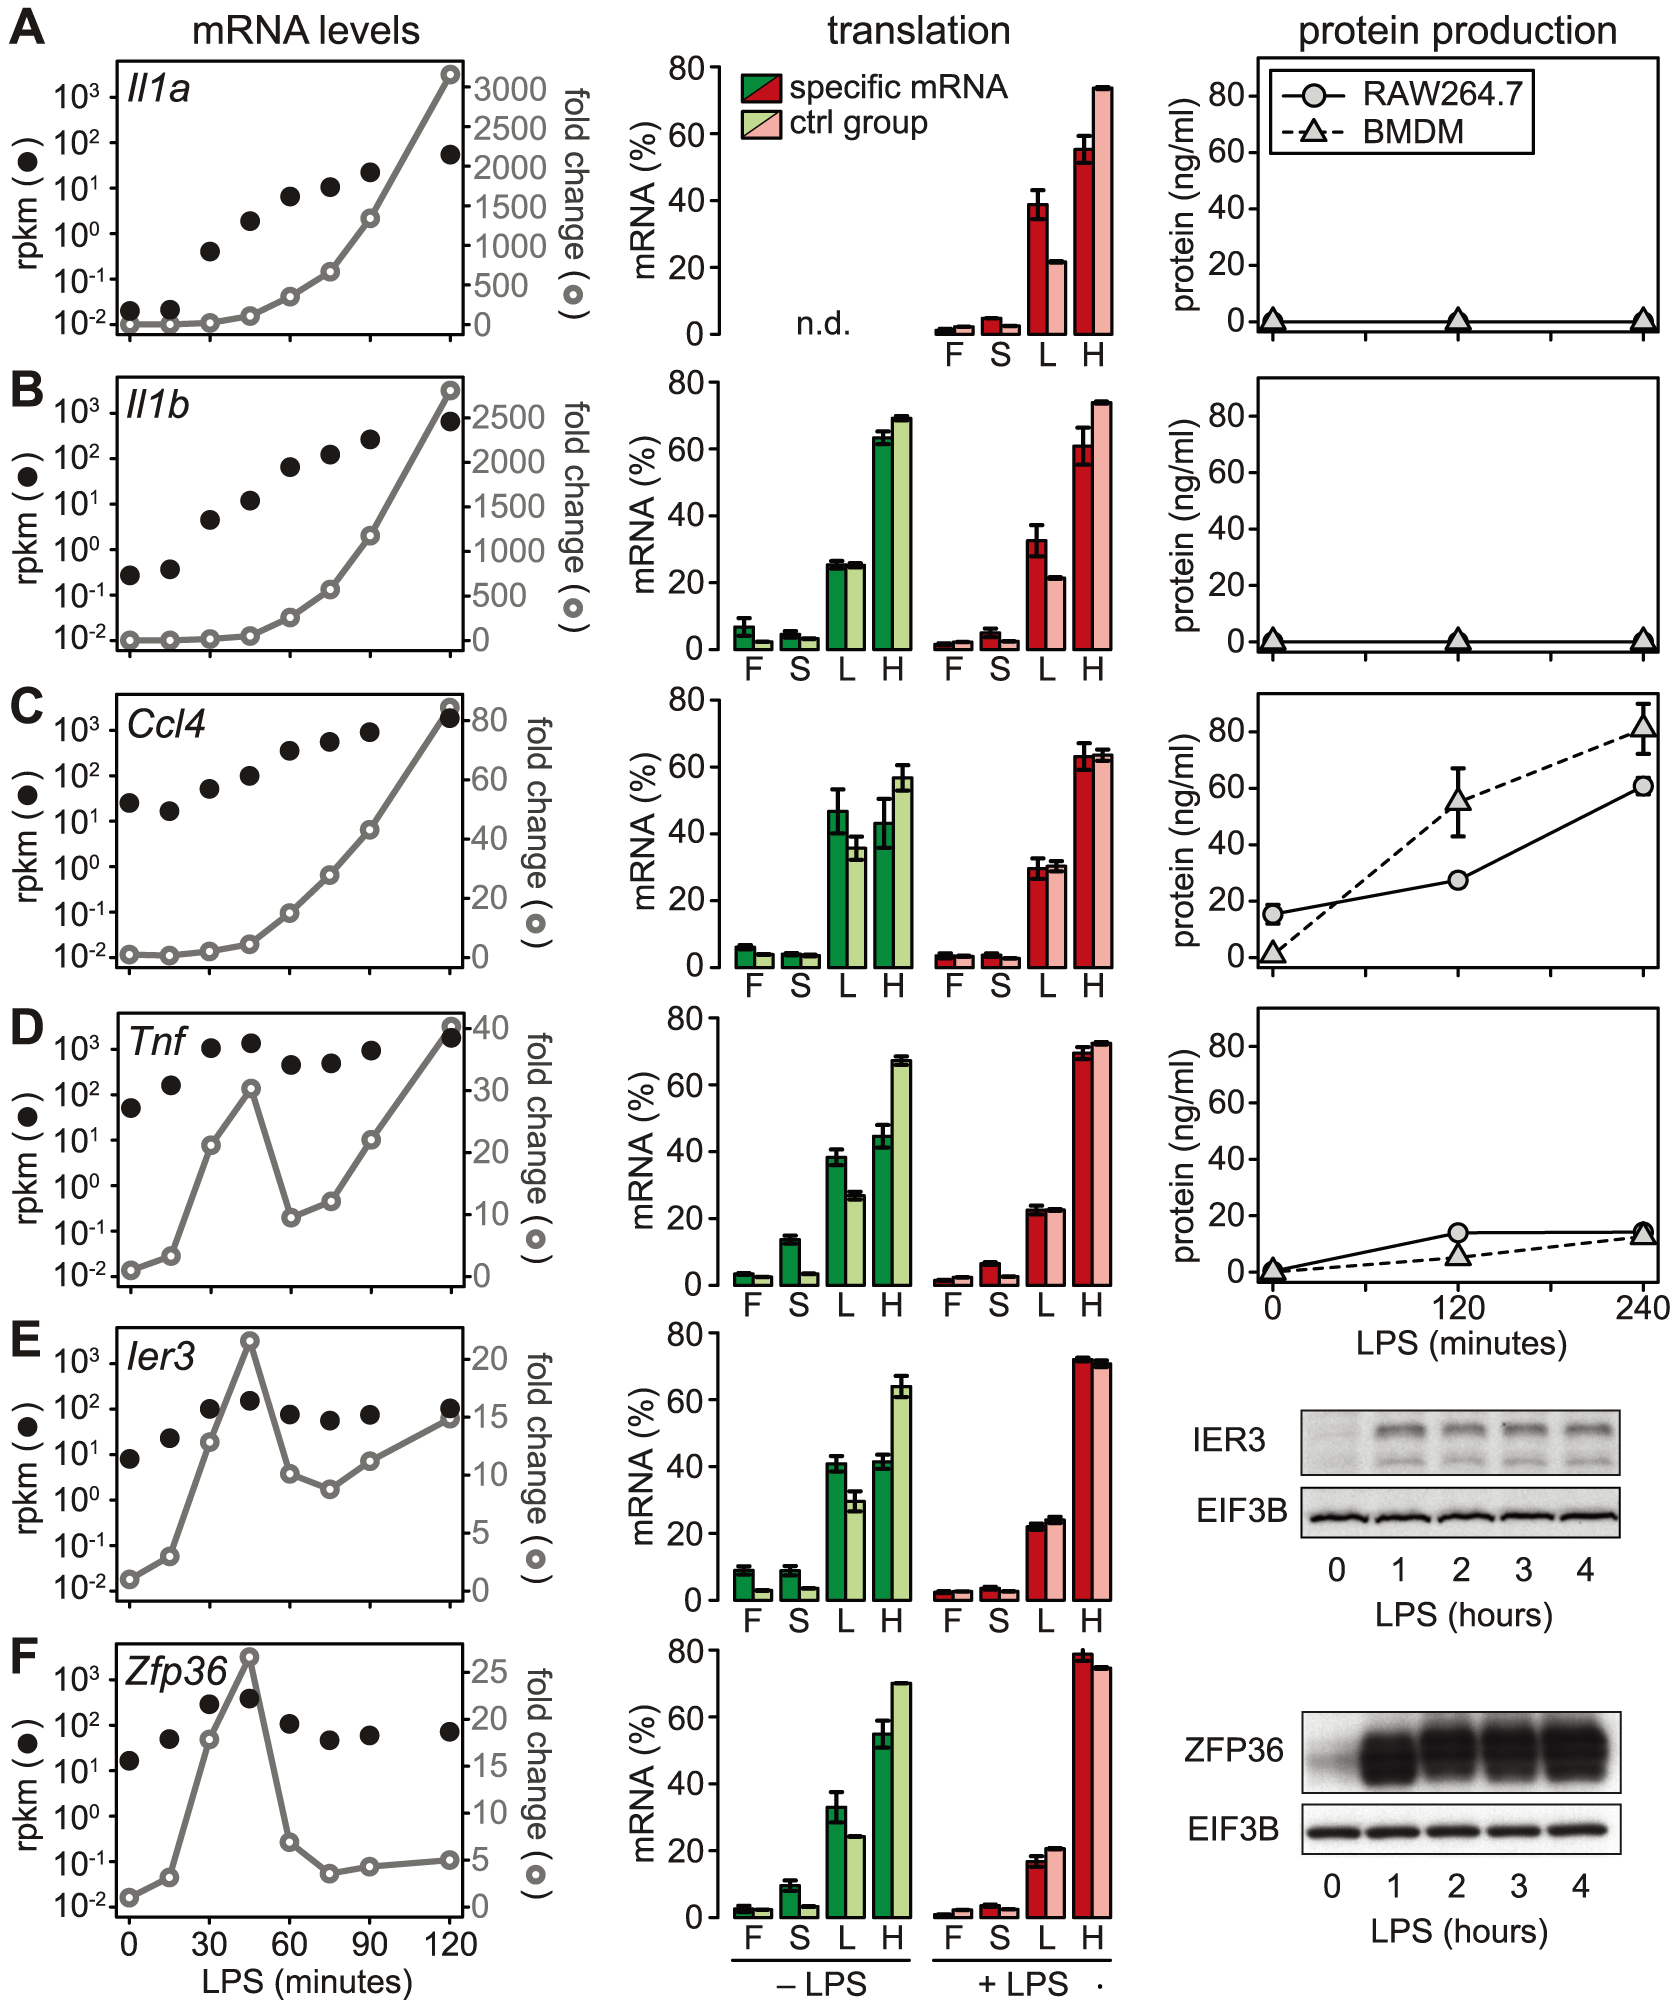 LPS-induced changes in mRNA levels, translation and protein production.